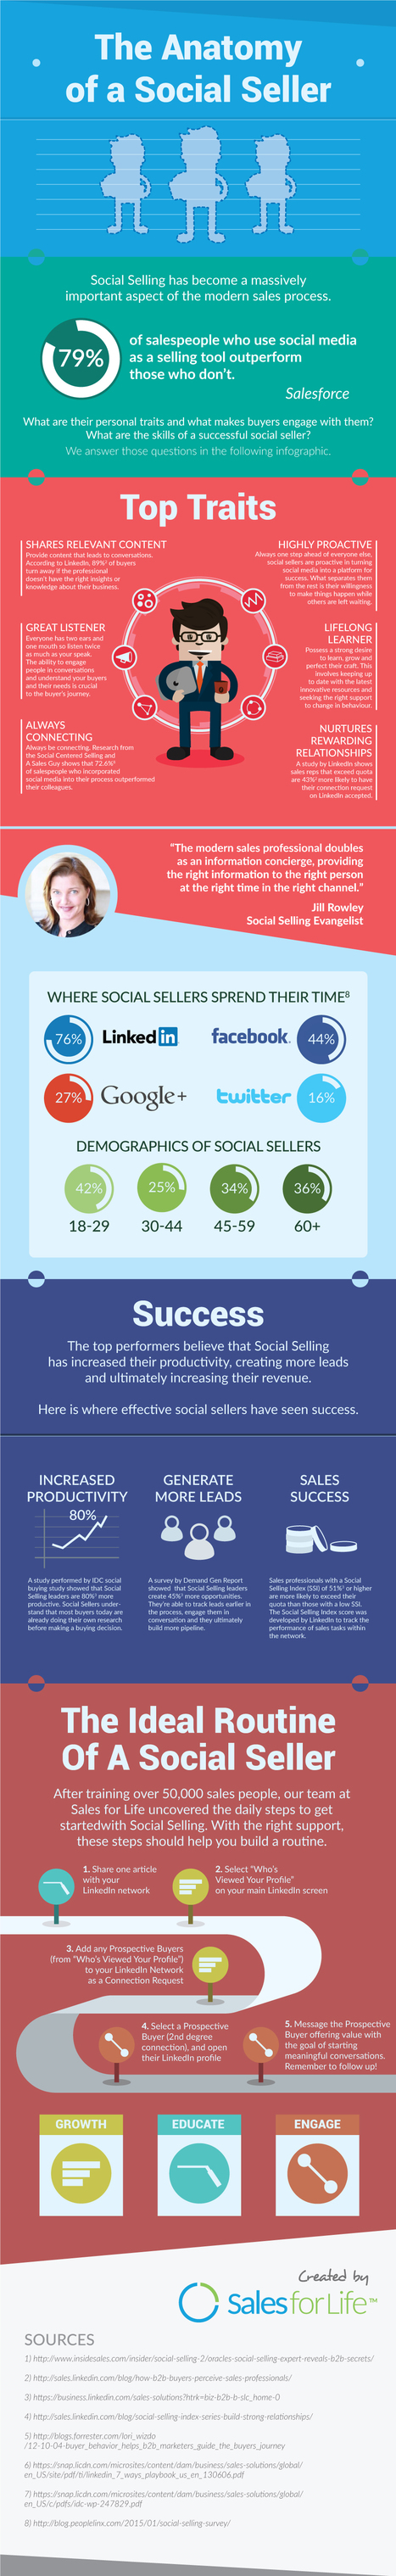 The Science Behind the Modern Sales Professional #INFOGRAPHIC   brand influencers social media marketing   Scoop.it